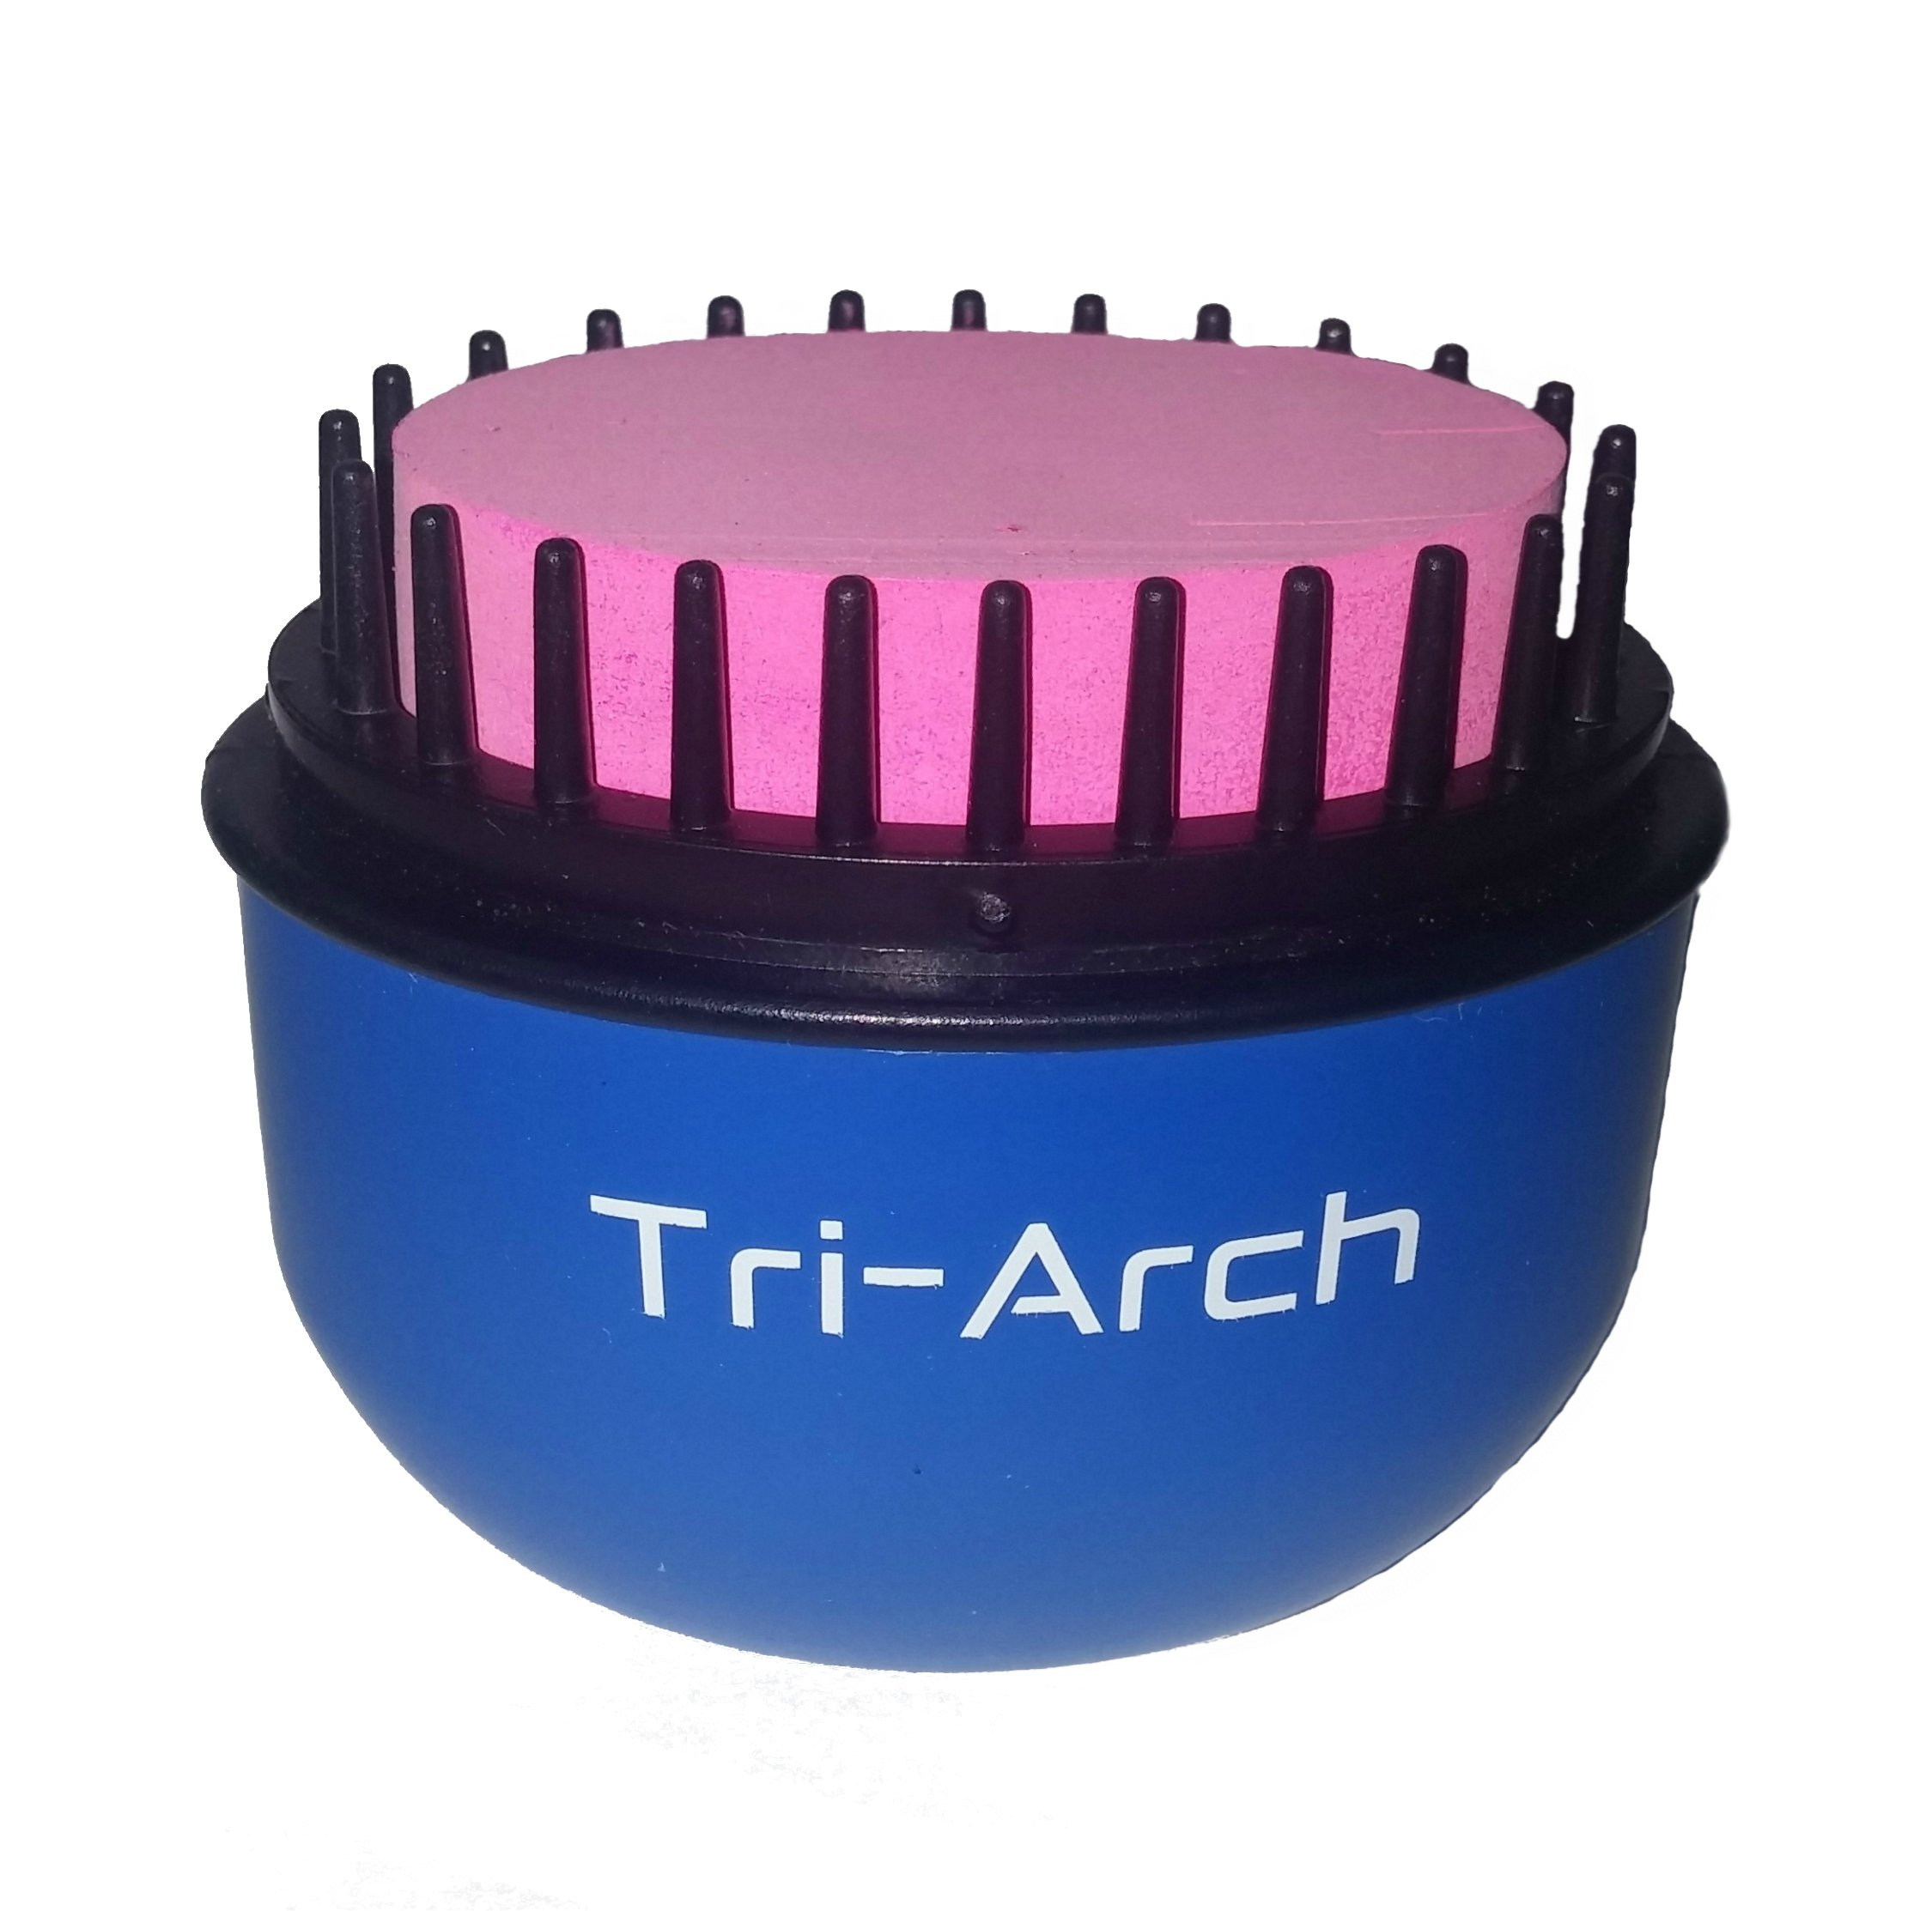 Hair Chalk | Temporary Hair Color | Temporary Hair Dye and Salon Style Highlights | Comes in Blue, Pink, or Purple | Blonde, Brunette, Black, works on all hair colors